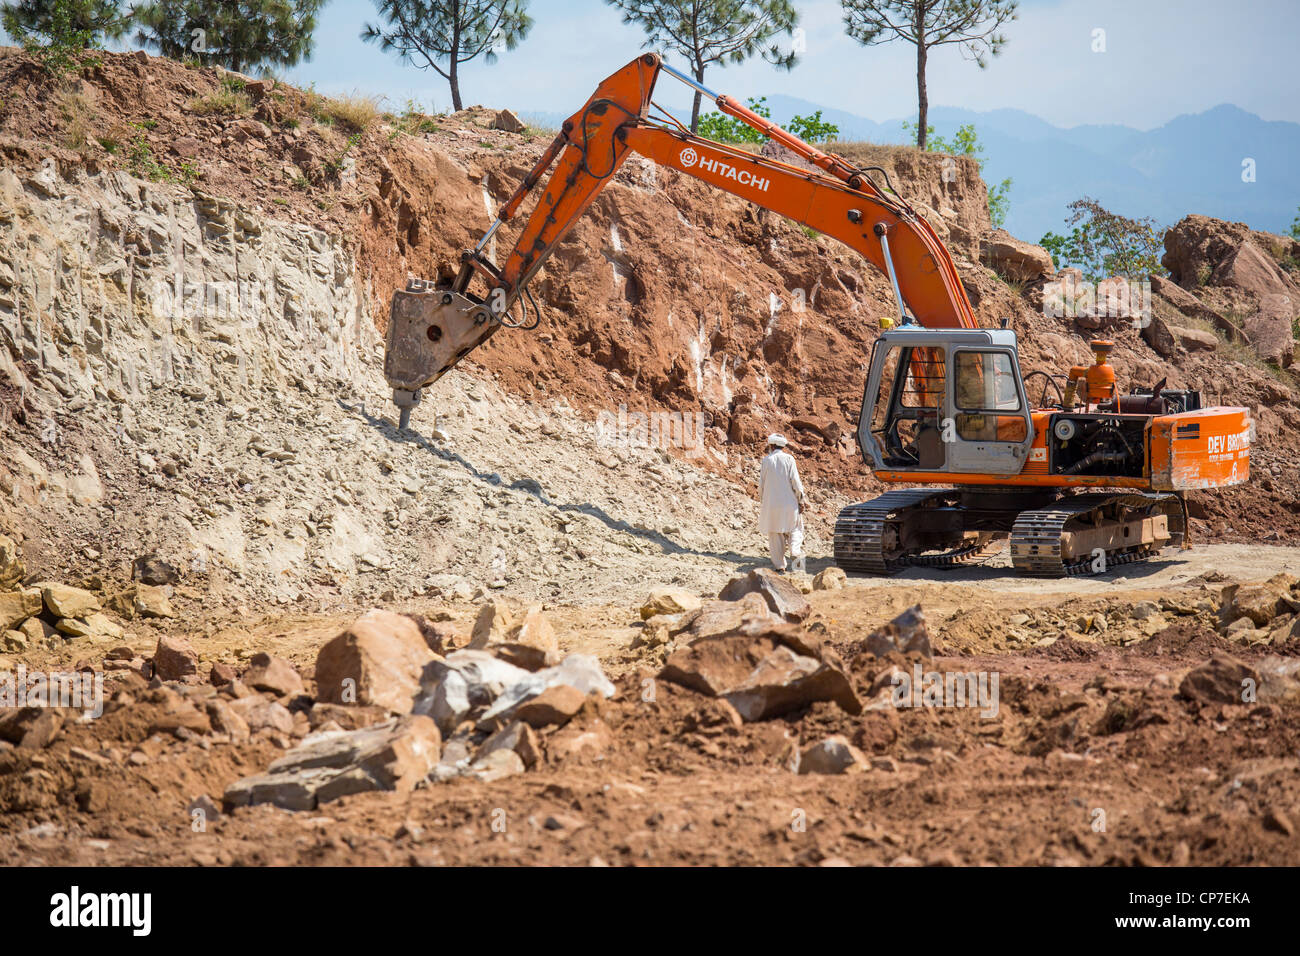 Road construction project in Punajab, Pakistan - Stock Image